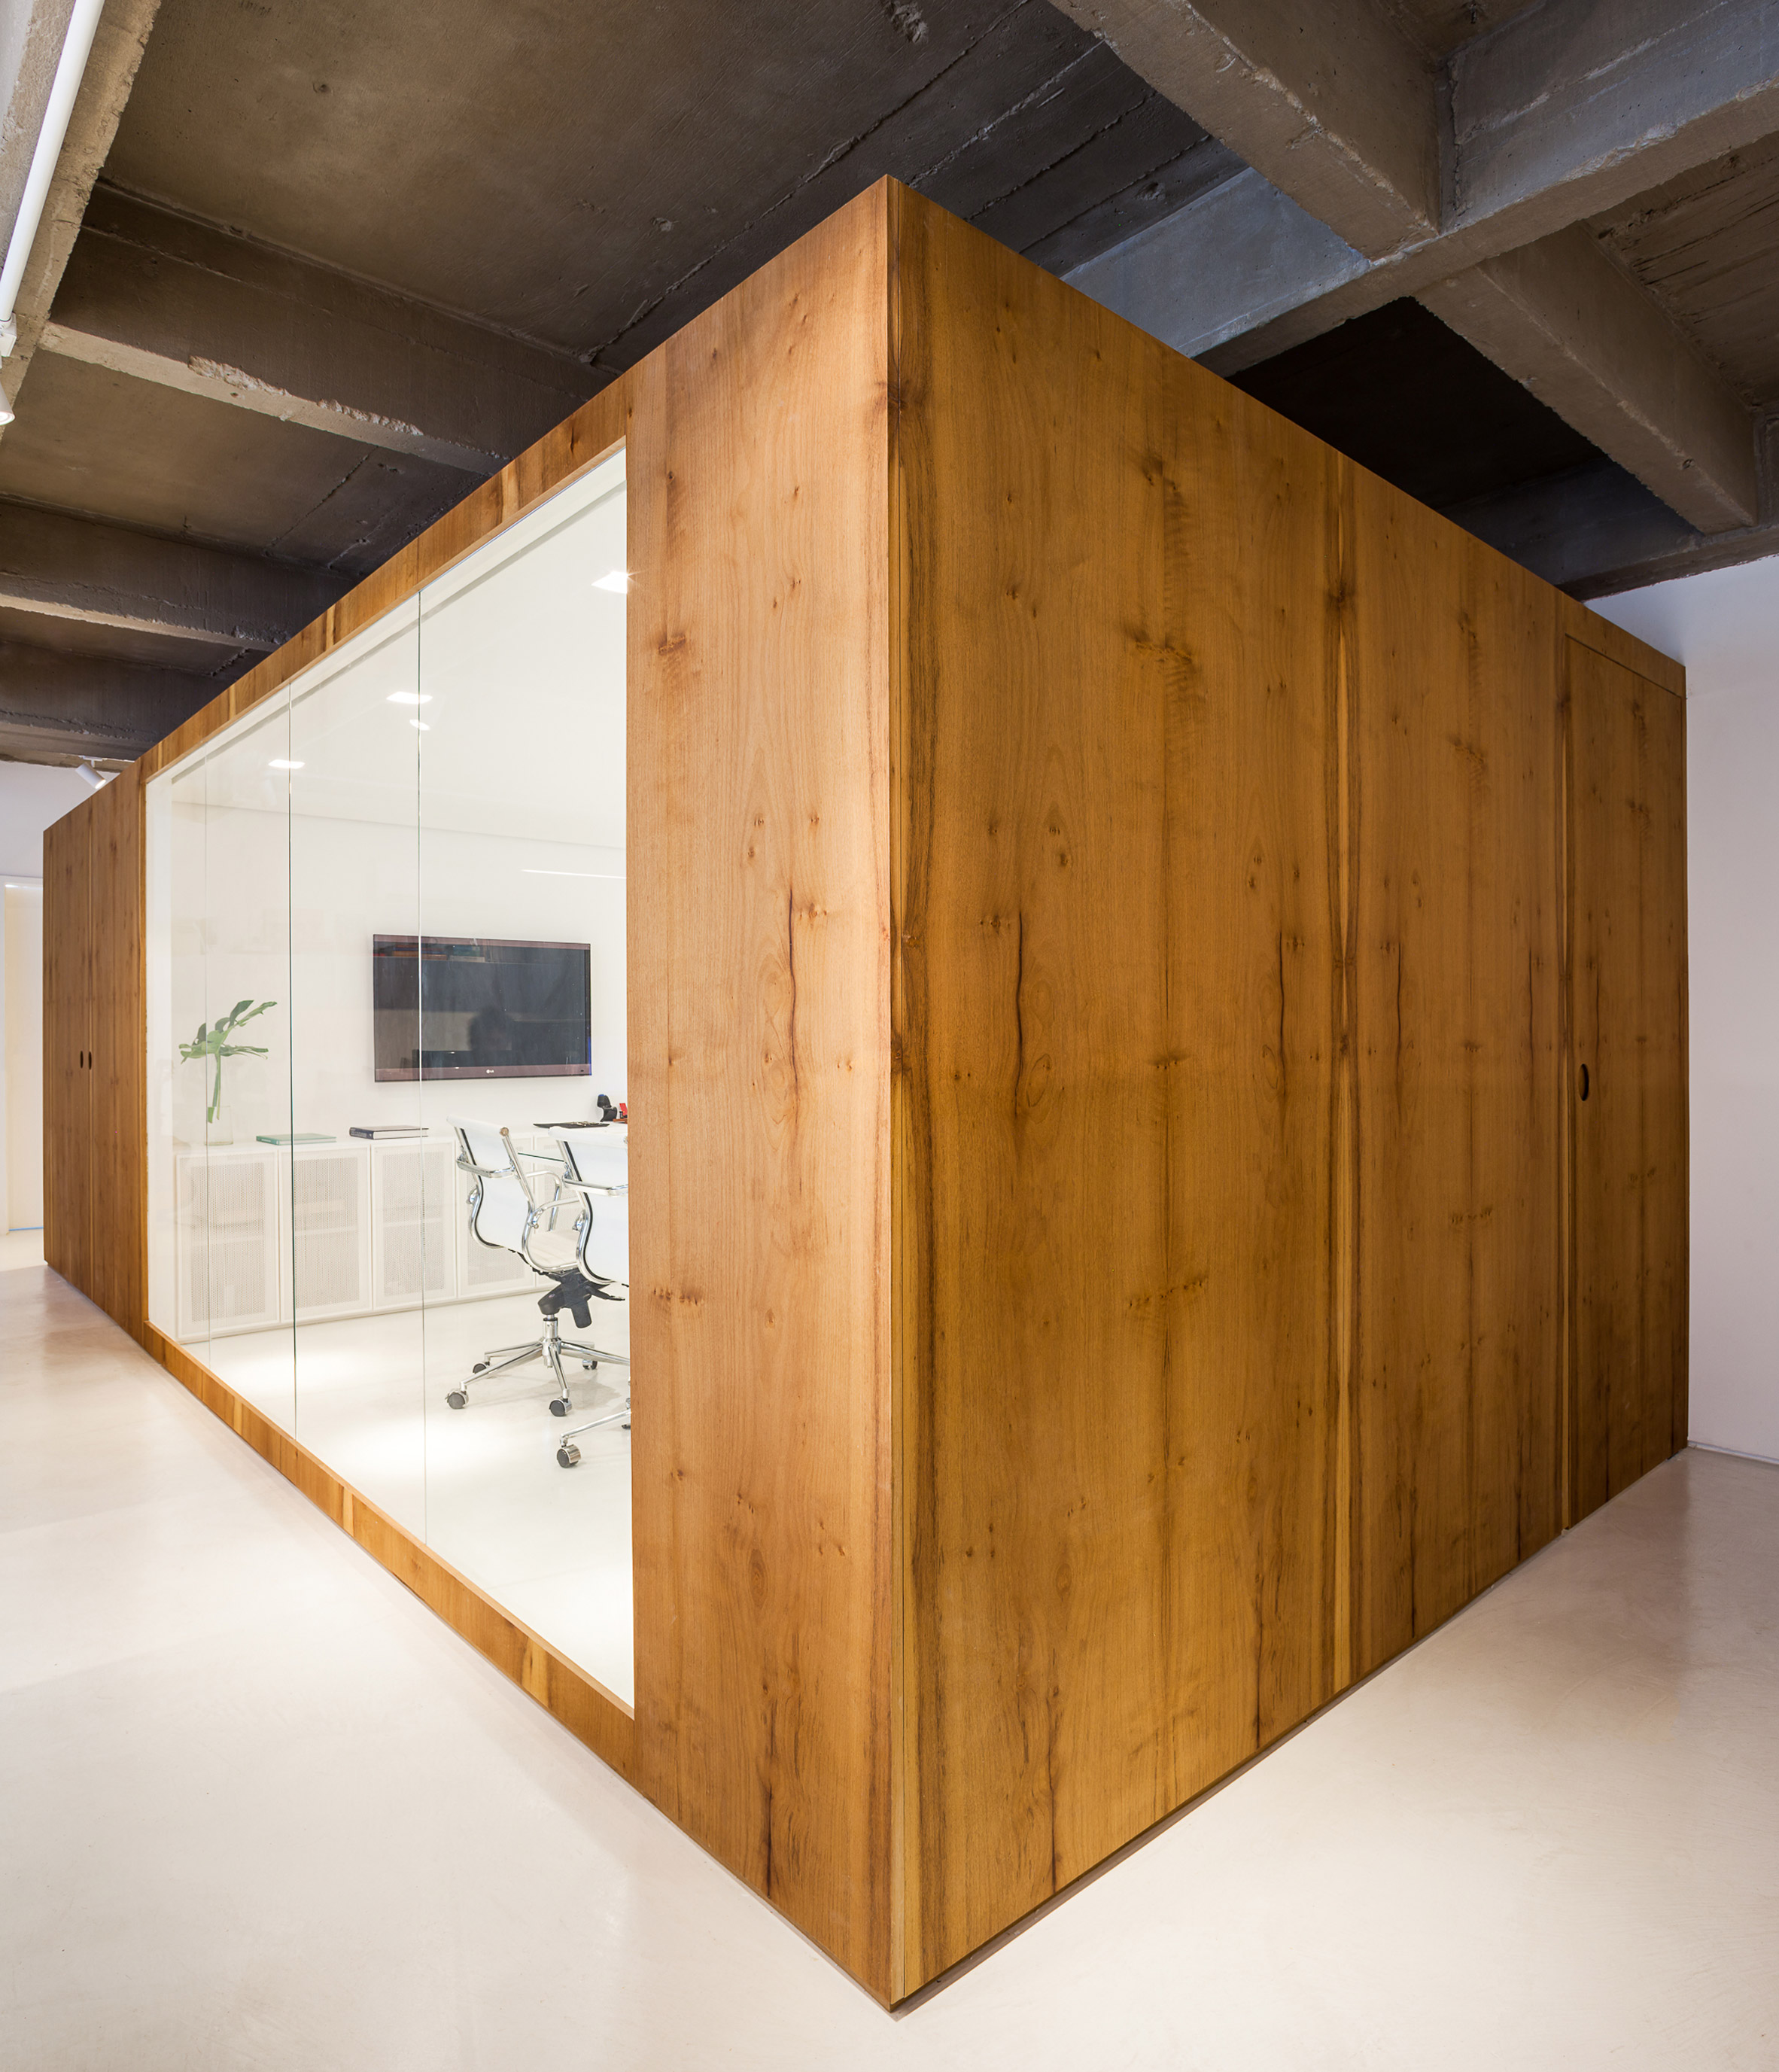 Compact architects' office in São Paulo features wooden meeting cube